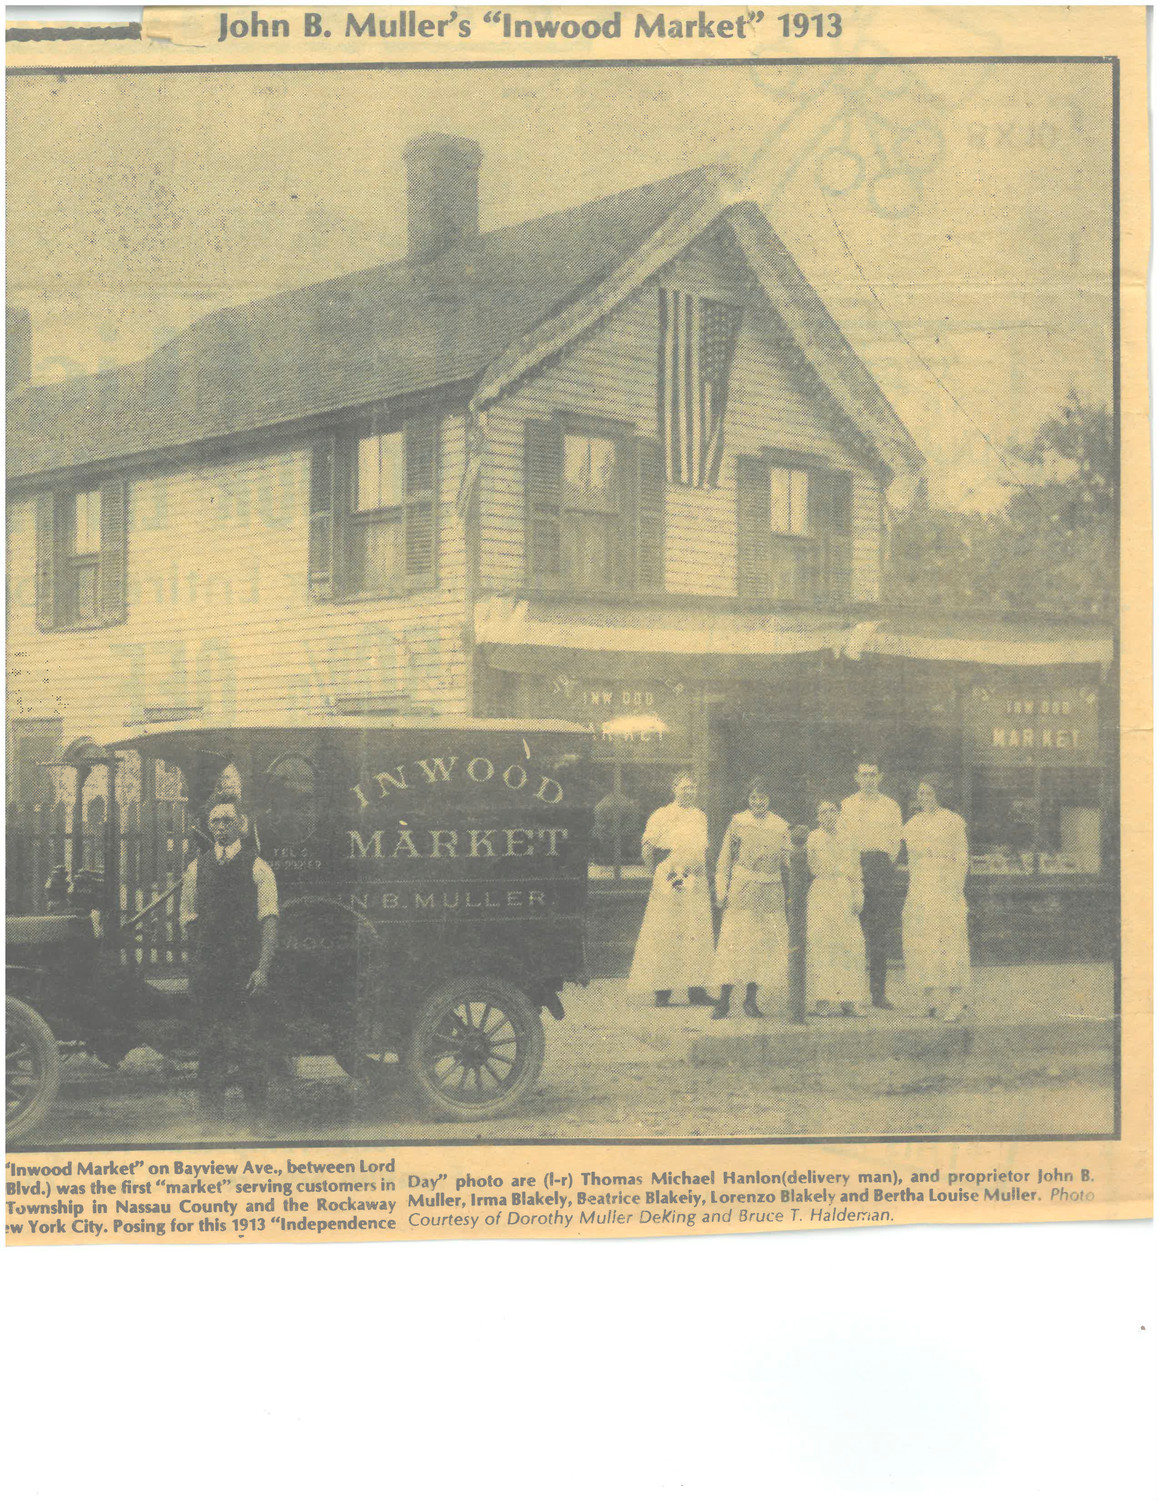 John B. Muller's Inwood Market was a family business, from left, Muller's son-in-law Thomas Michael Hanlon, John B. Muller, Irma Blakely, Beatrice Blakely, Lorenzo Blakely and Bertha Louise Muller.